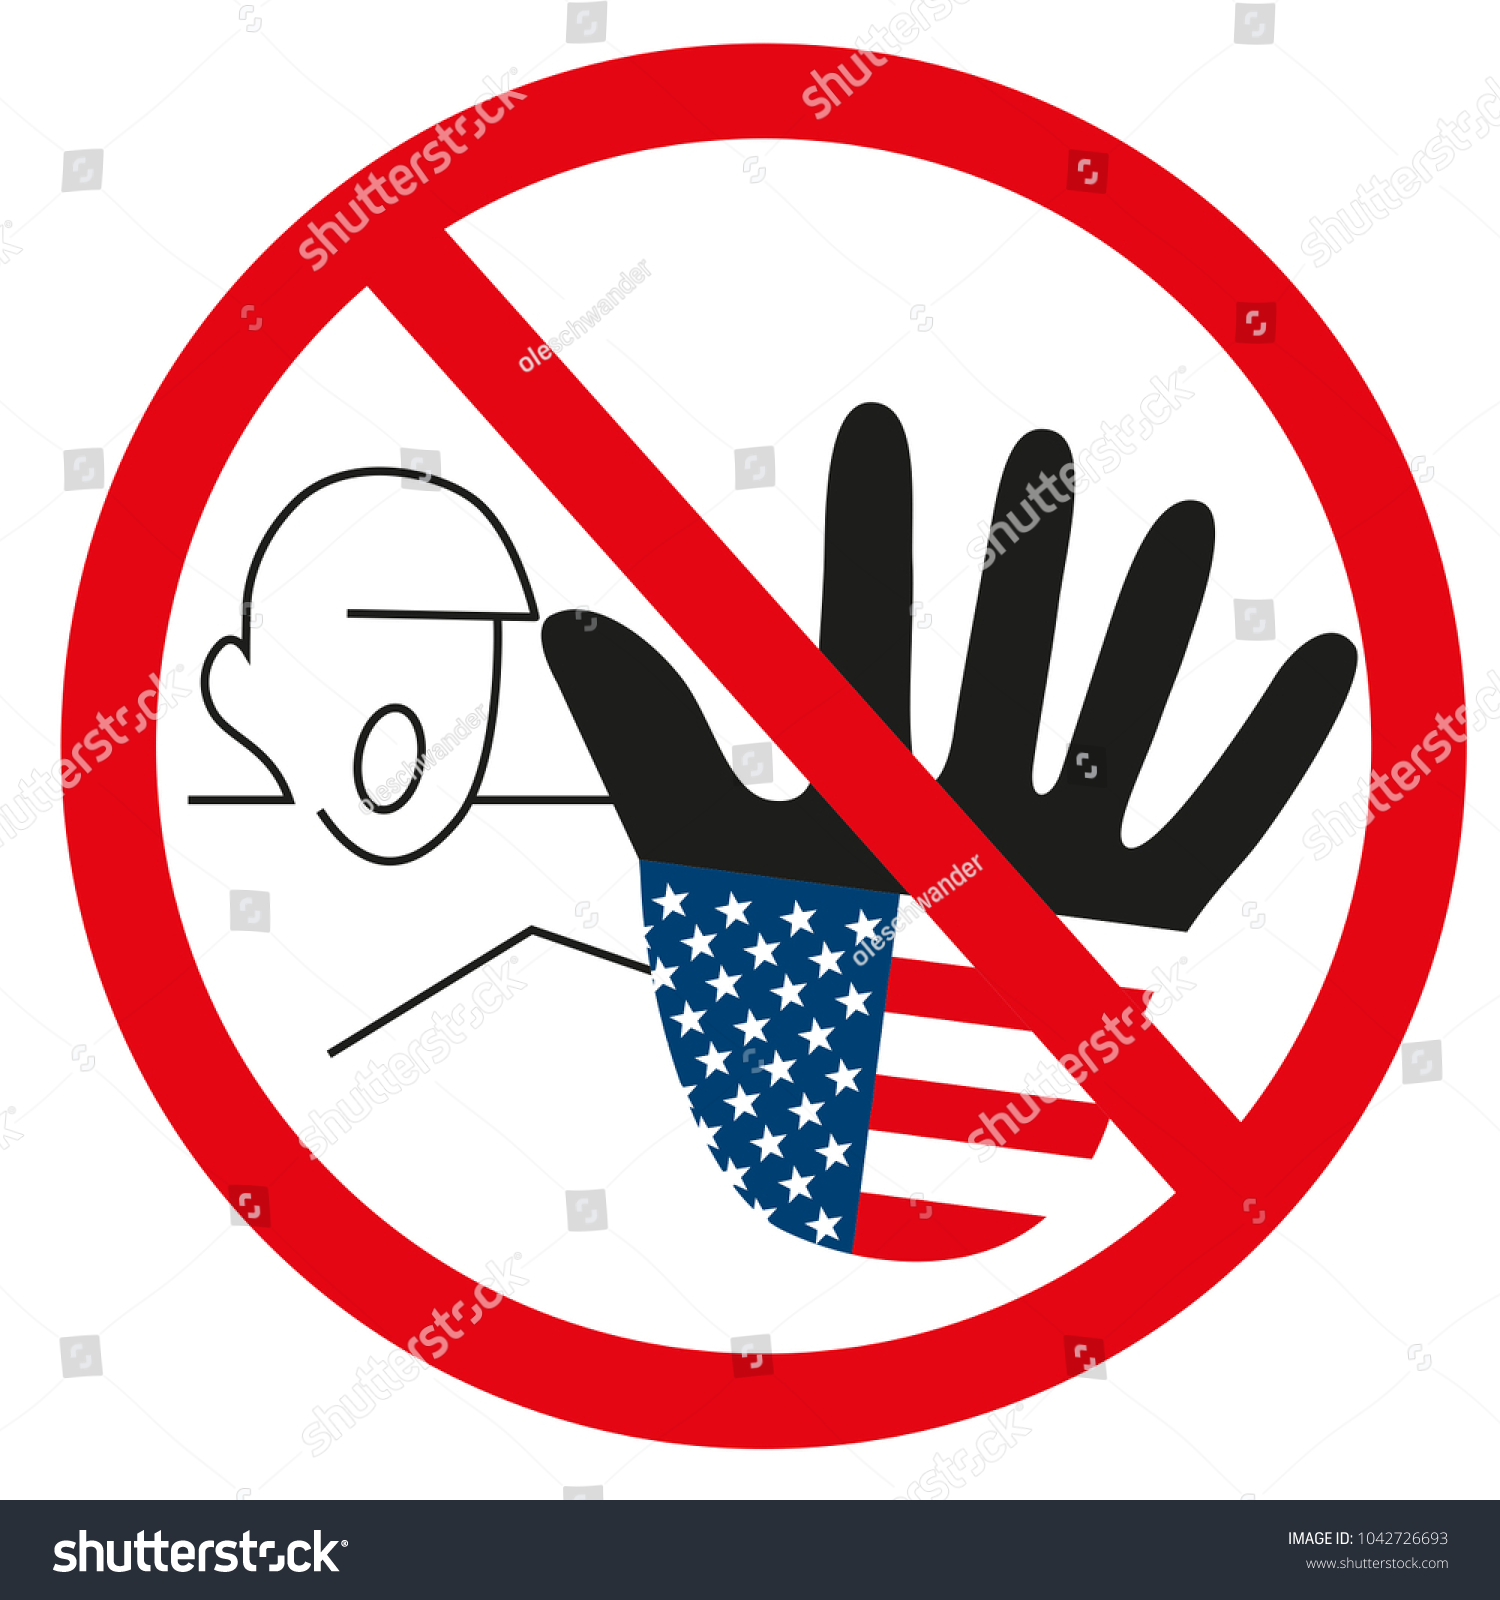 Schranke Clipart Graphic Usa Hand Stop Sign Warning Stock Vektorgrafik Lizenzfrei